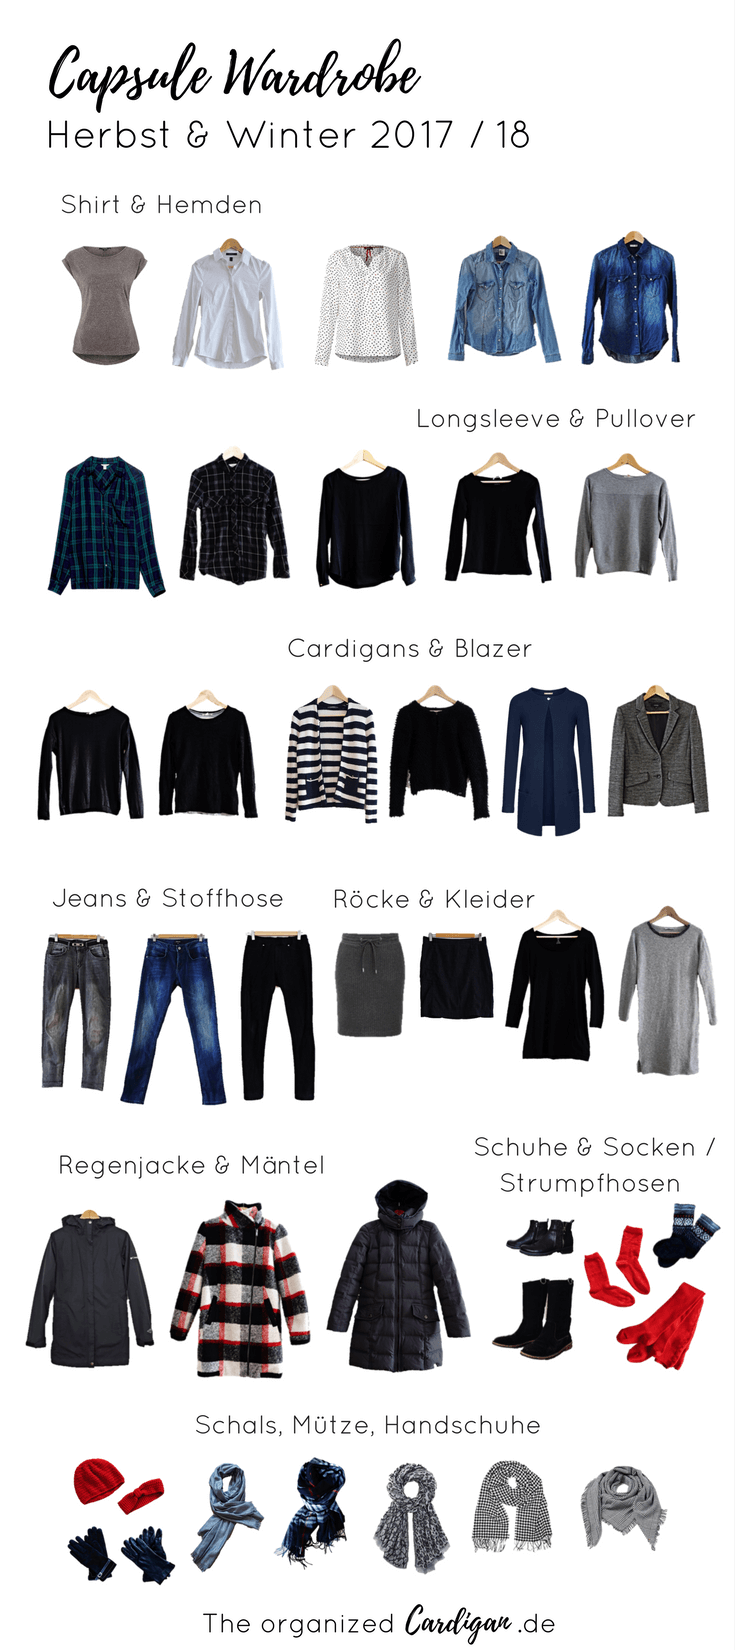 Herbst & Winter Capsule Wardrobe 2018 / 2019